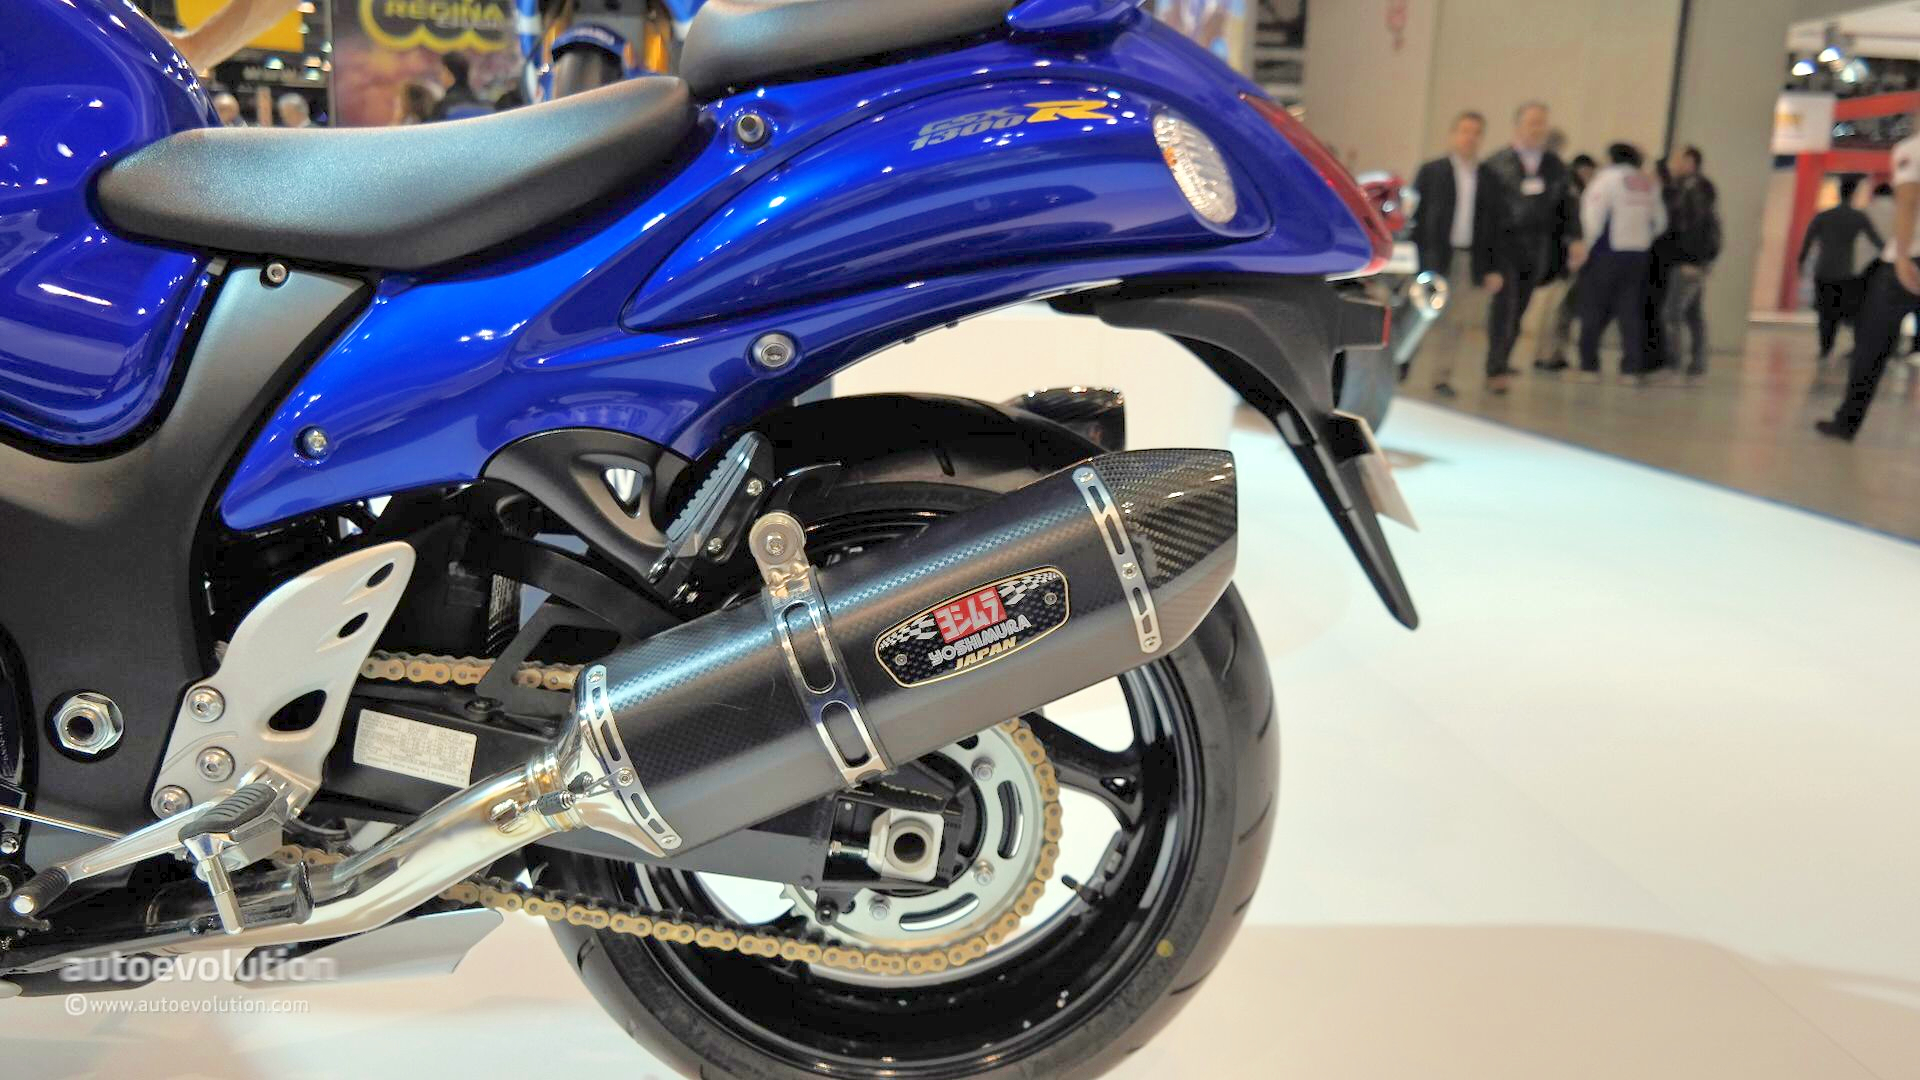 2015 Suzuki GSX1300R Hayabusa Has ABS at EICMA 2014 [Live